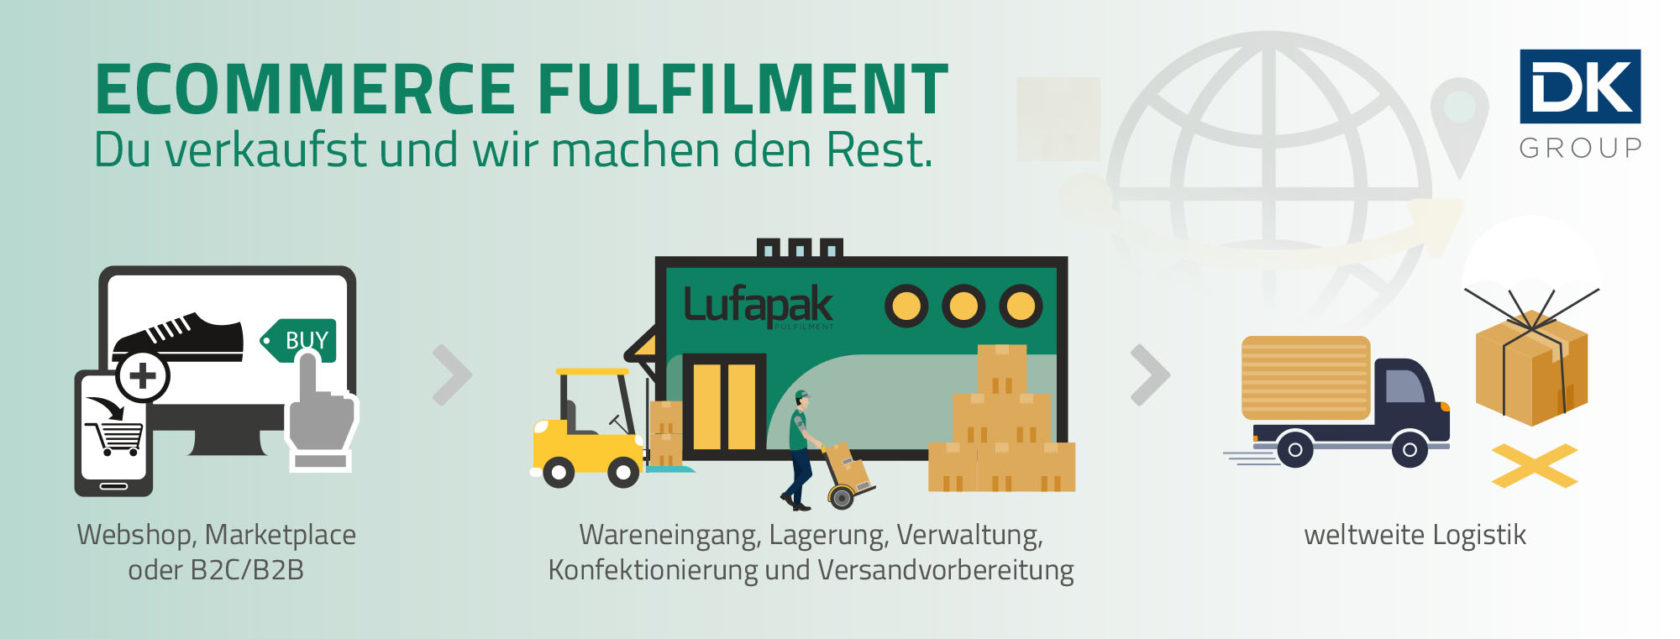 lufapak-e-commerce-fullfillment-service-center